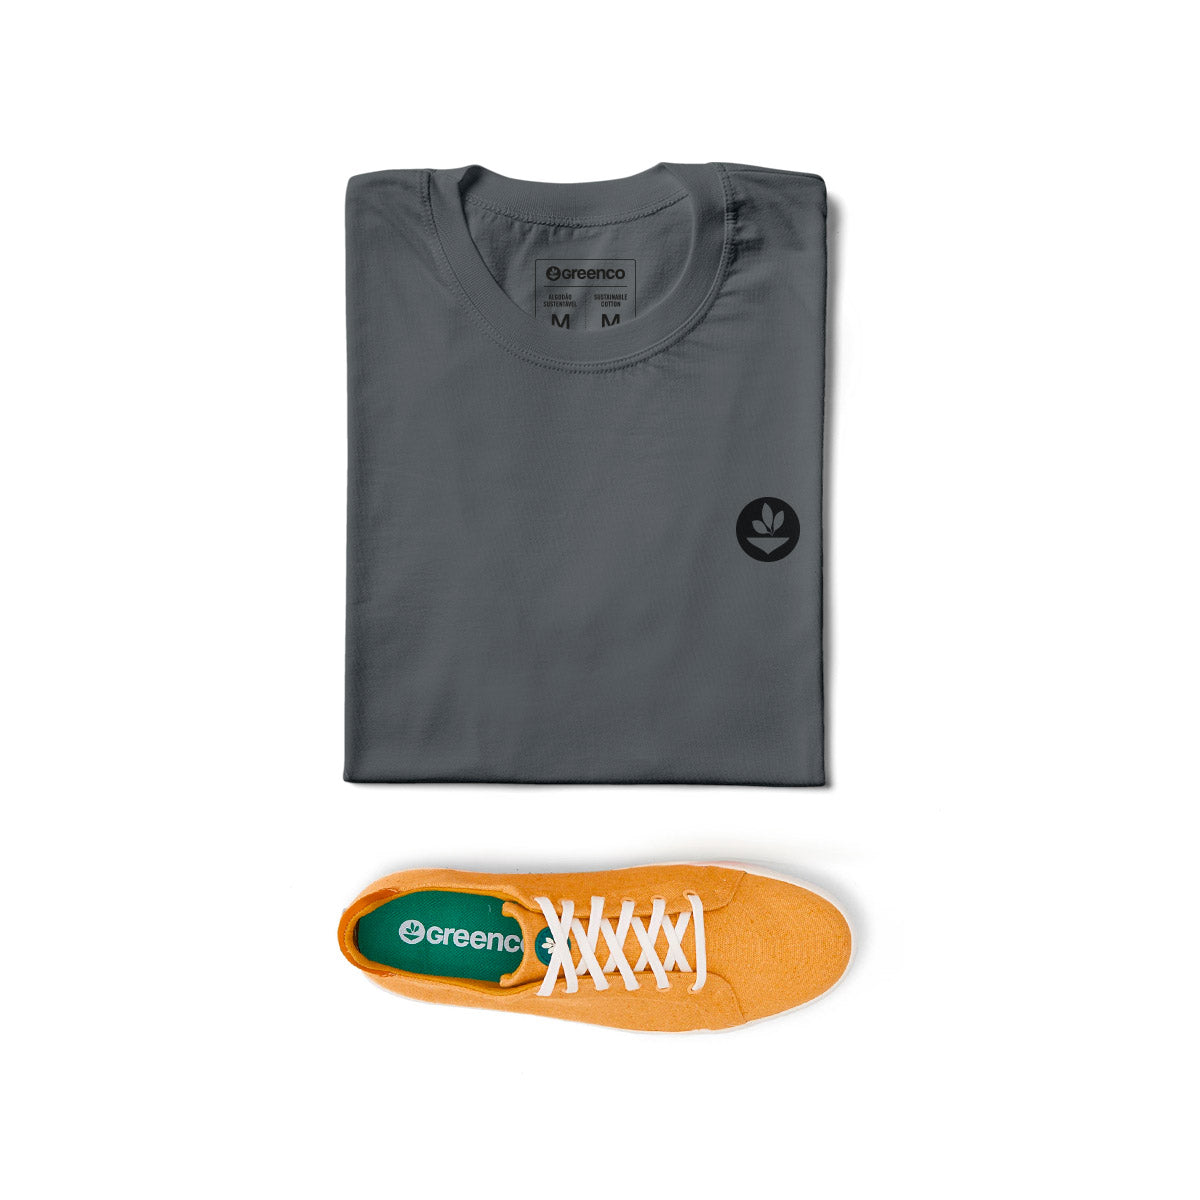 Arctic II Ocean Sneaker Men's Kit + Basic T-shirt